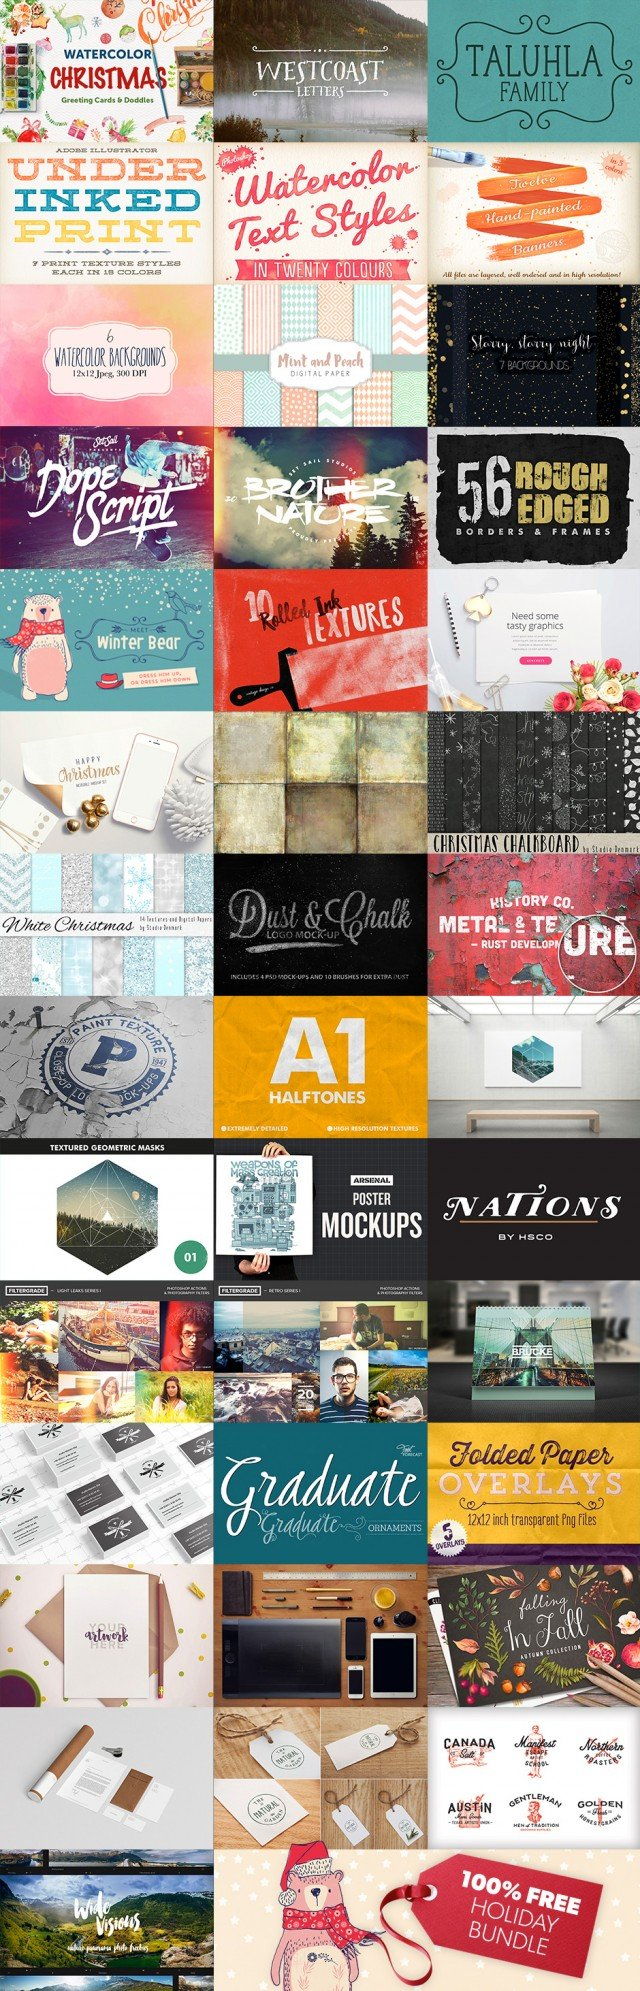 Massive End Of Year Design Bundle 100% Free